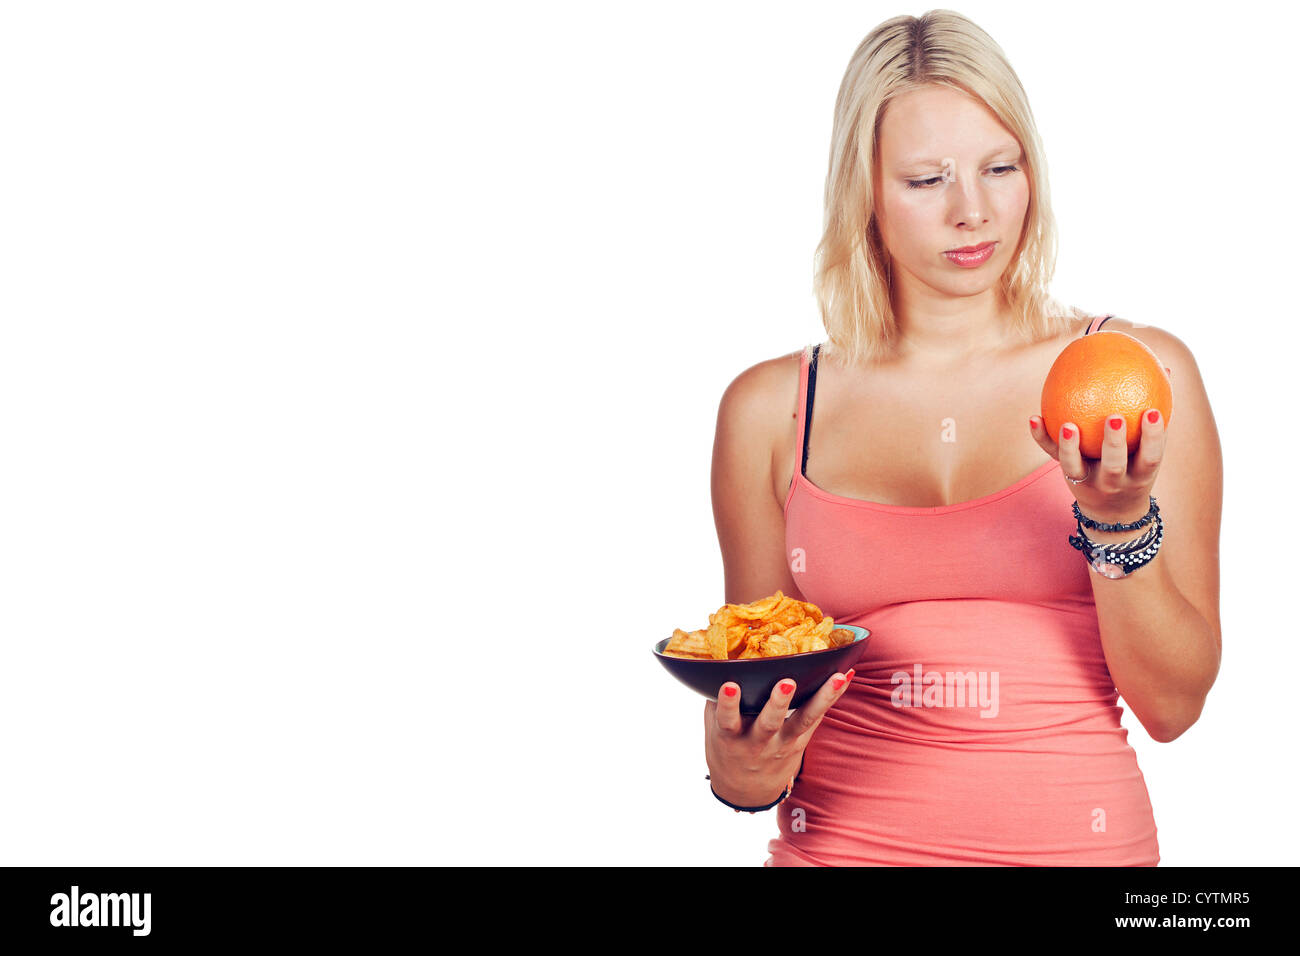 Attractive girl deciding to eat junk food or fruit. Isolated over white. - Stock Image